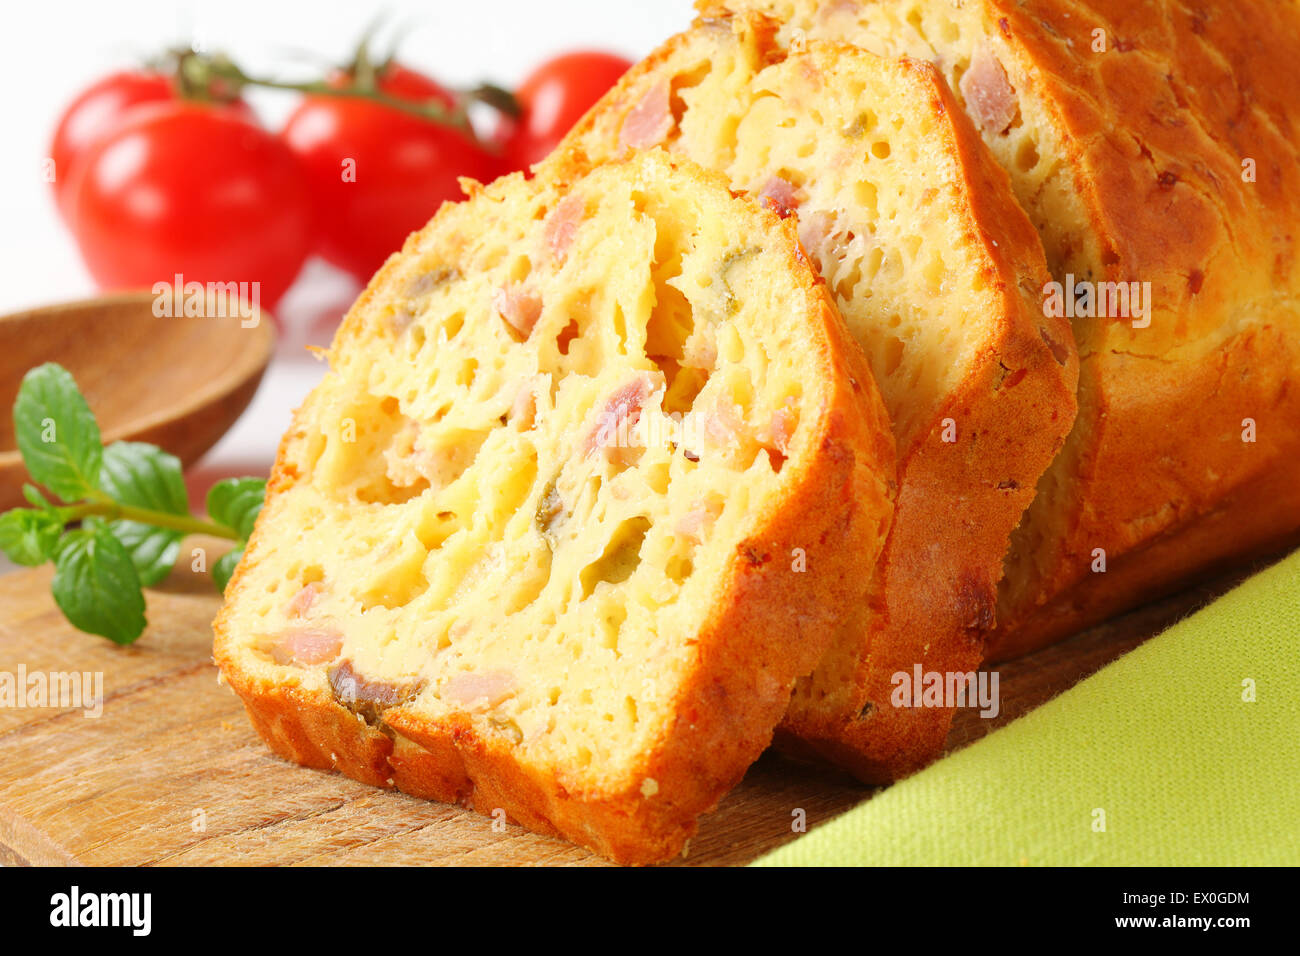 Slices of savory ham and olive cake - Stock Image